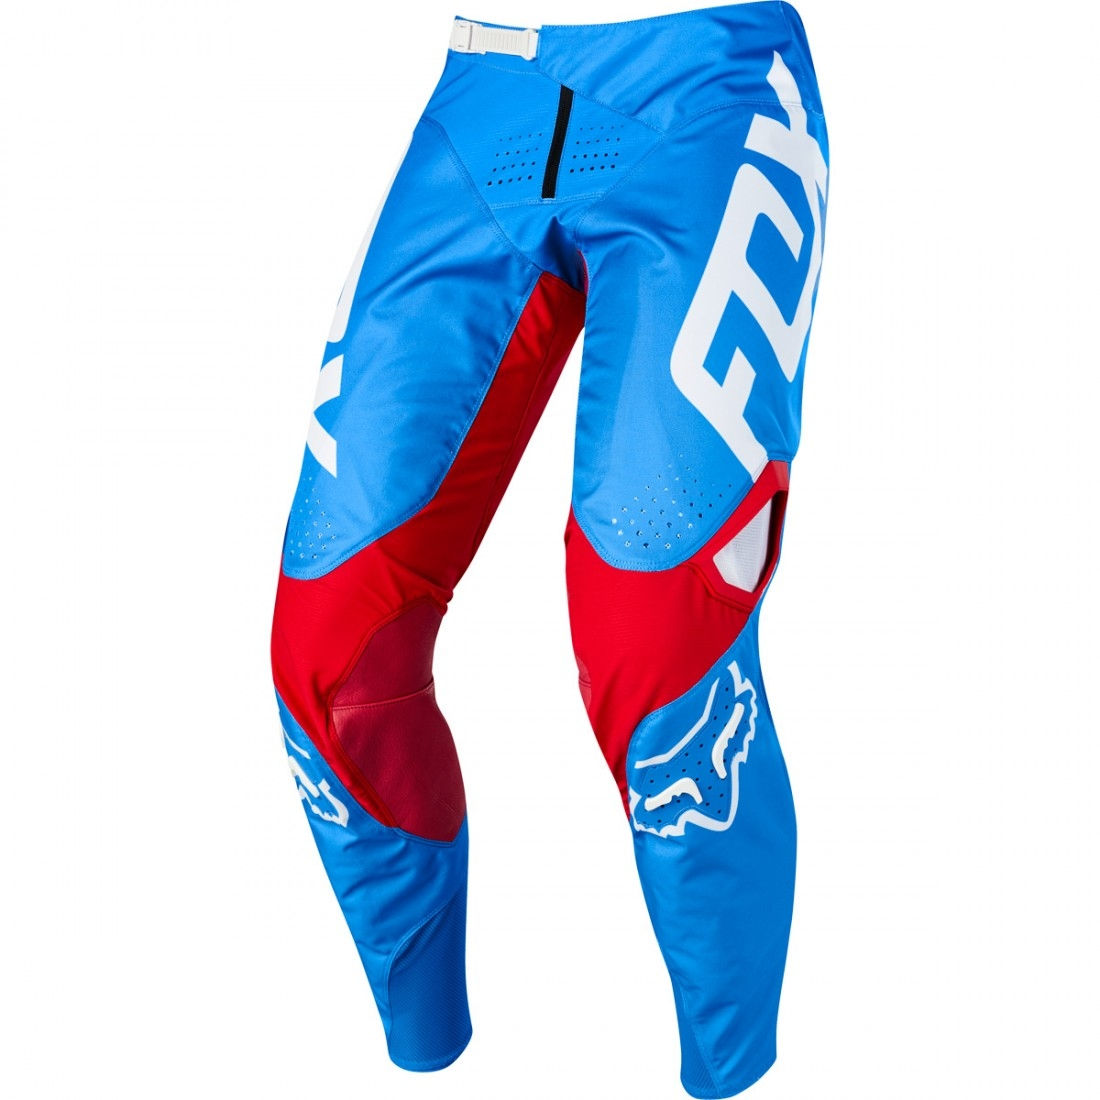 ad0147f0 FOX 360 2018 Red White & True LE Pant · Motocard